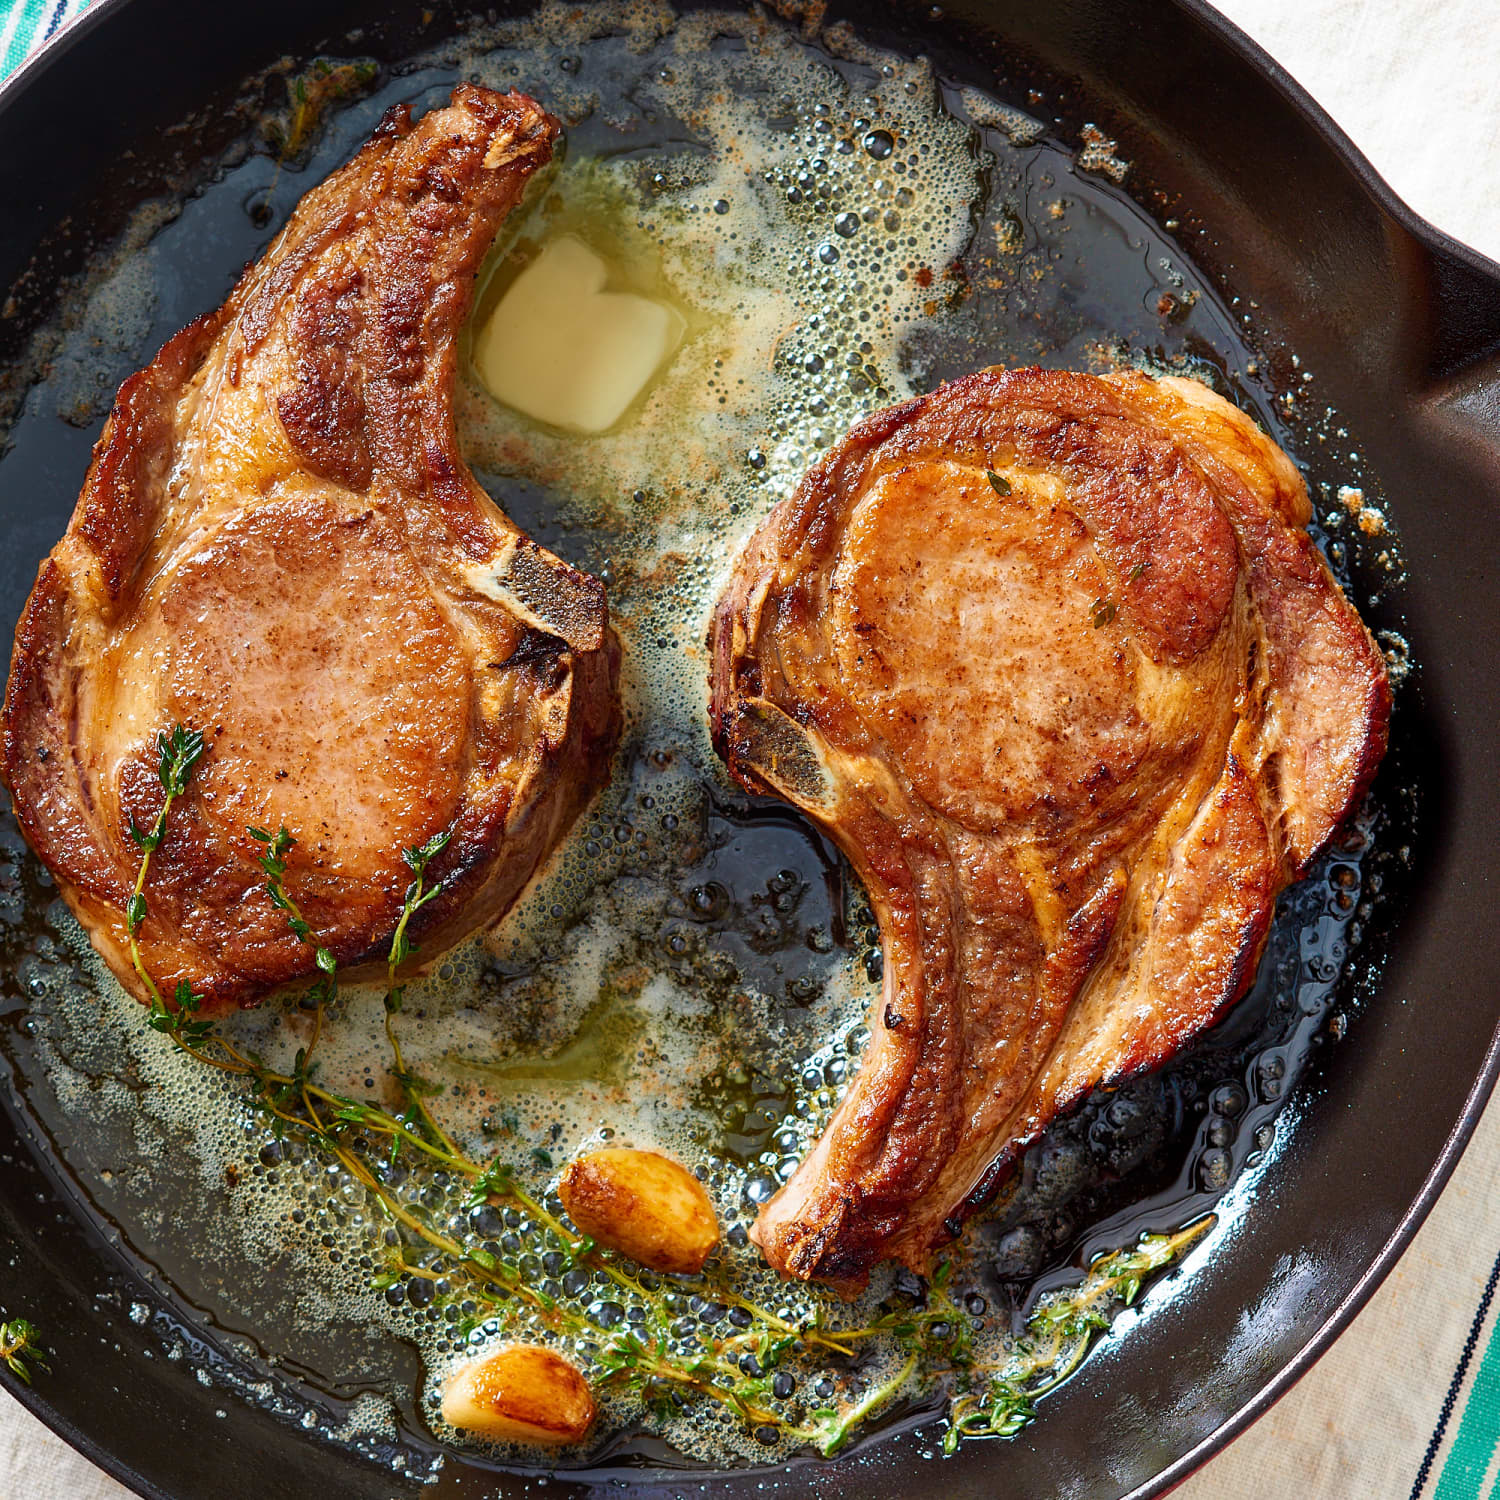 How To Make Easy Pan-Fried Pork Chops on the Stove | Kitchn